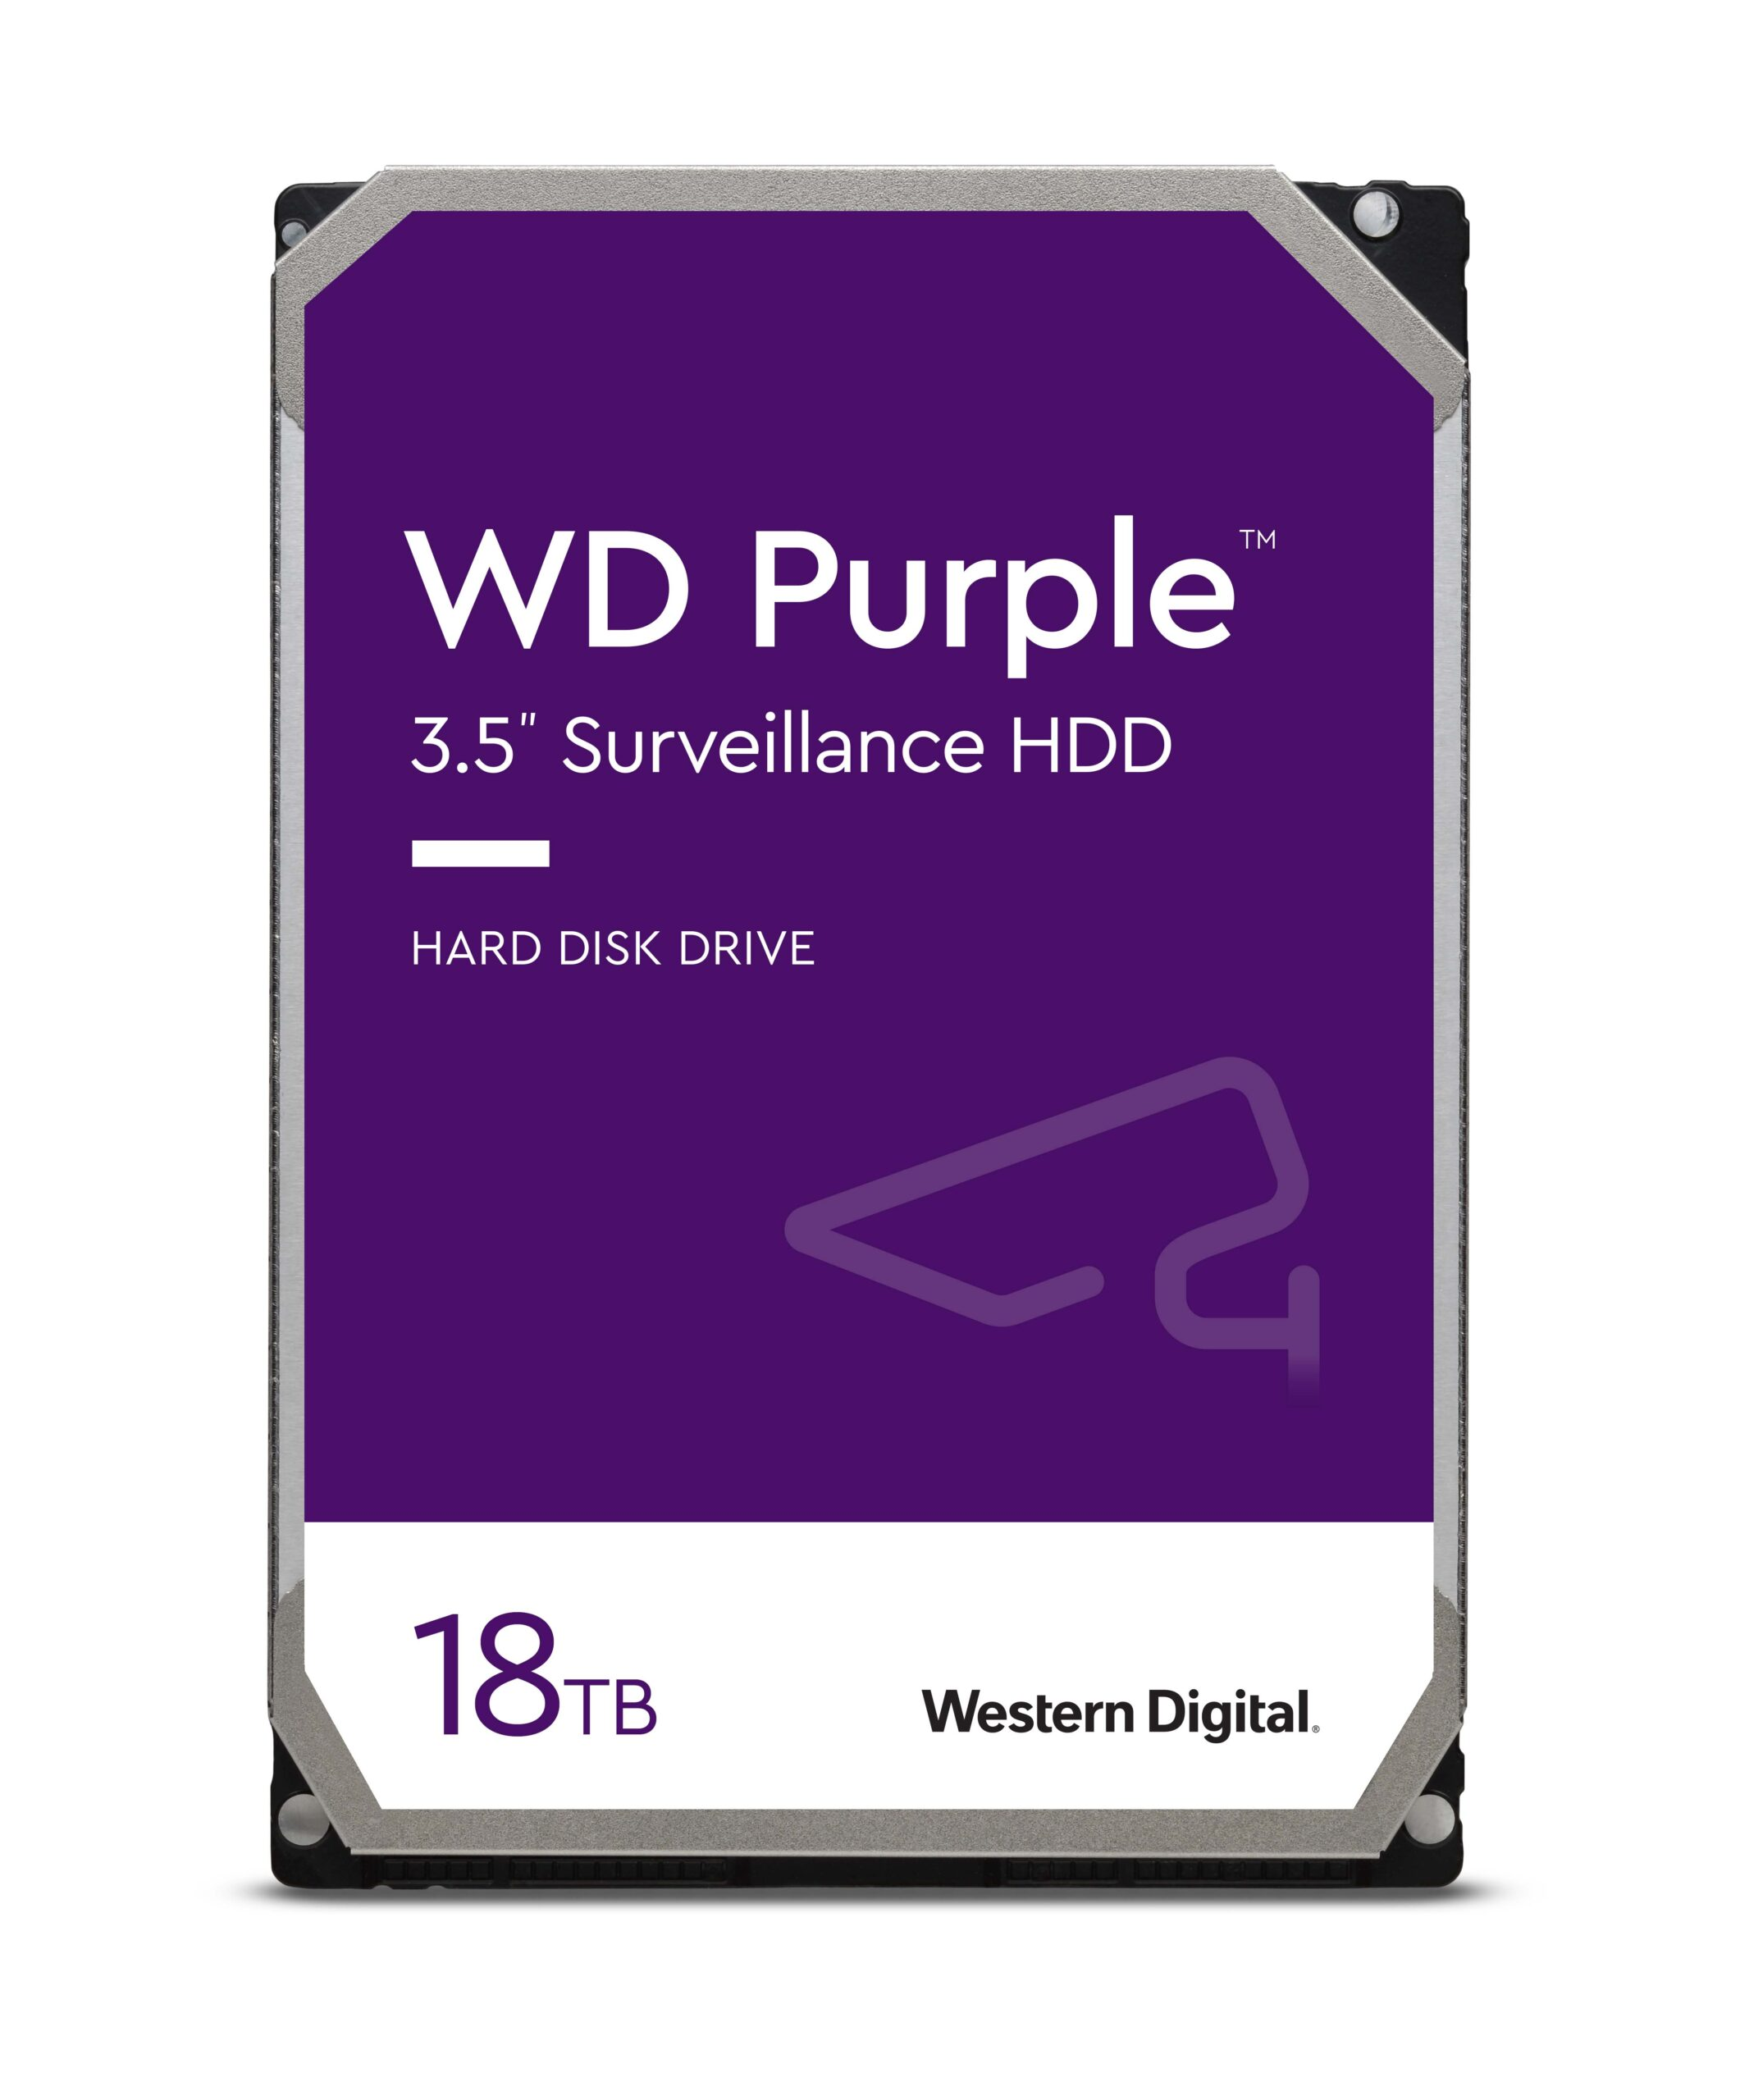 en us WD Purple 3.5 HDD front 18TB HR scaled